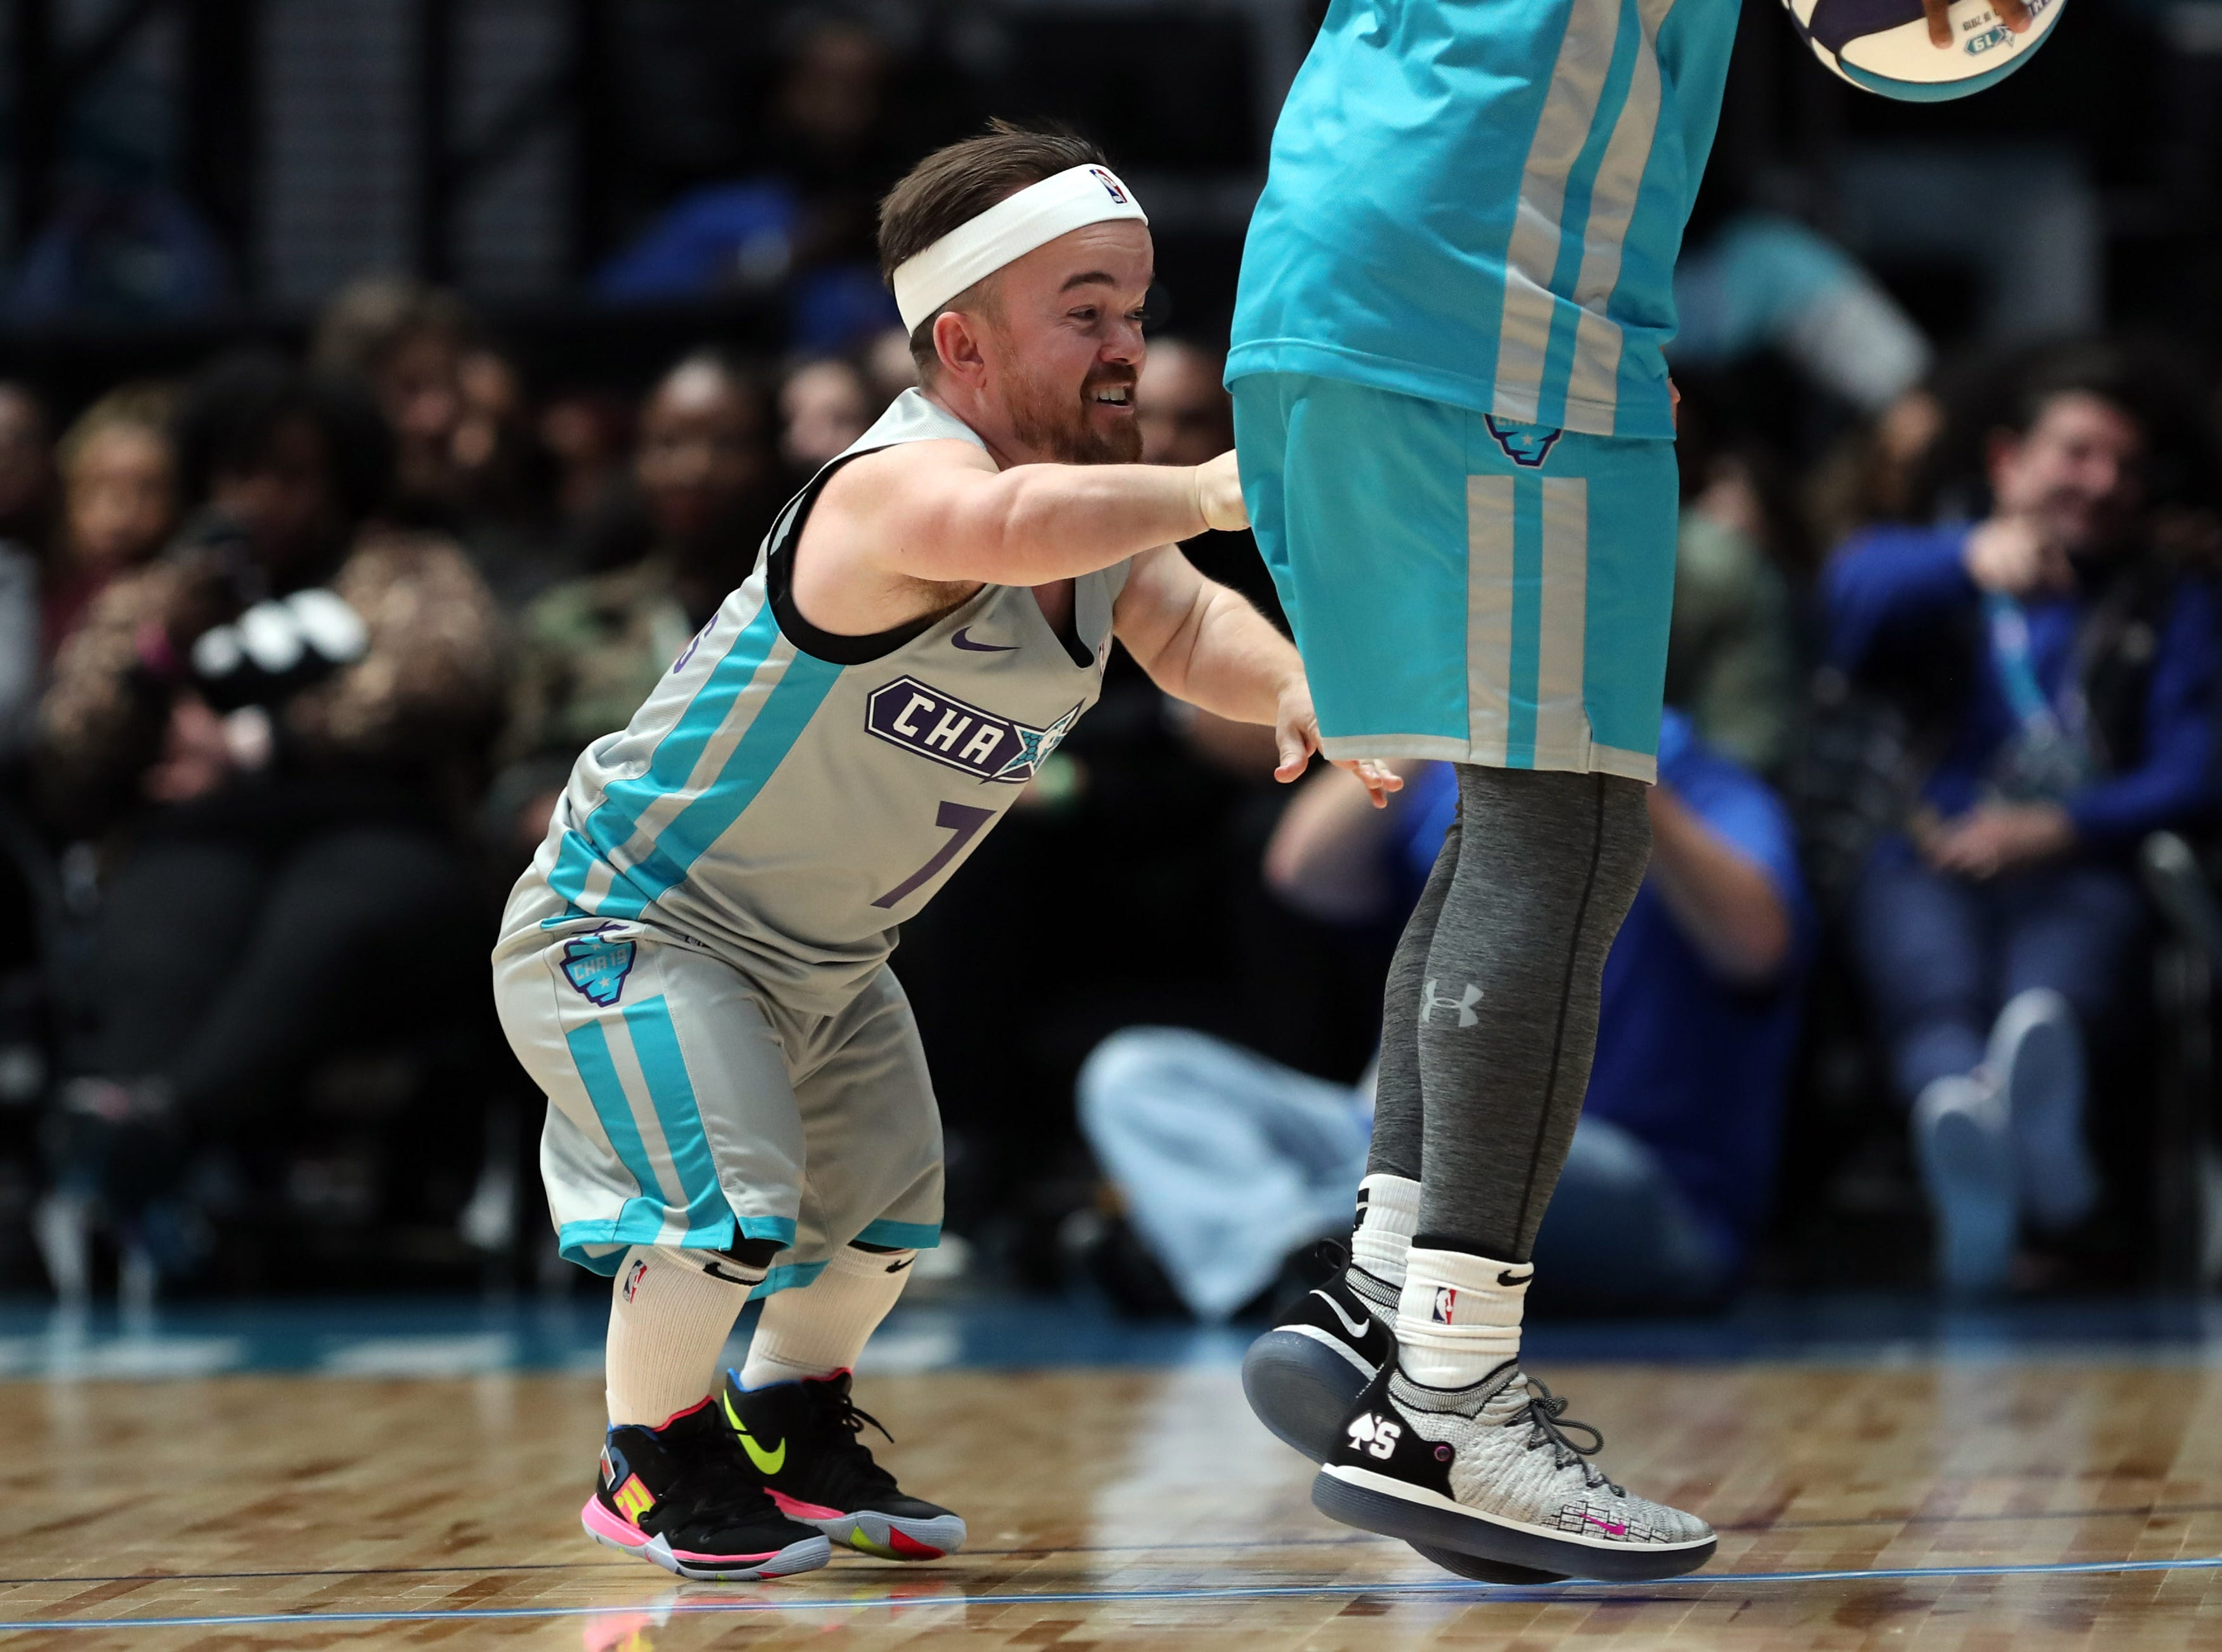 Brad Williams plays defense during the Celebrity Game.